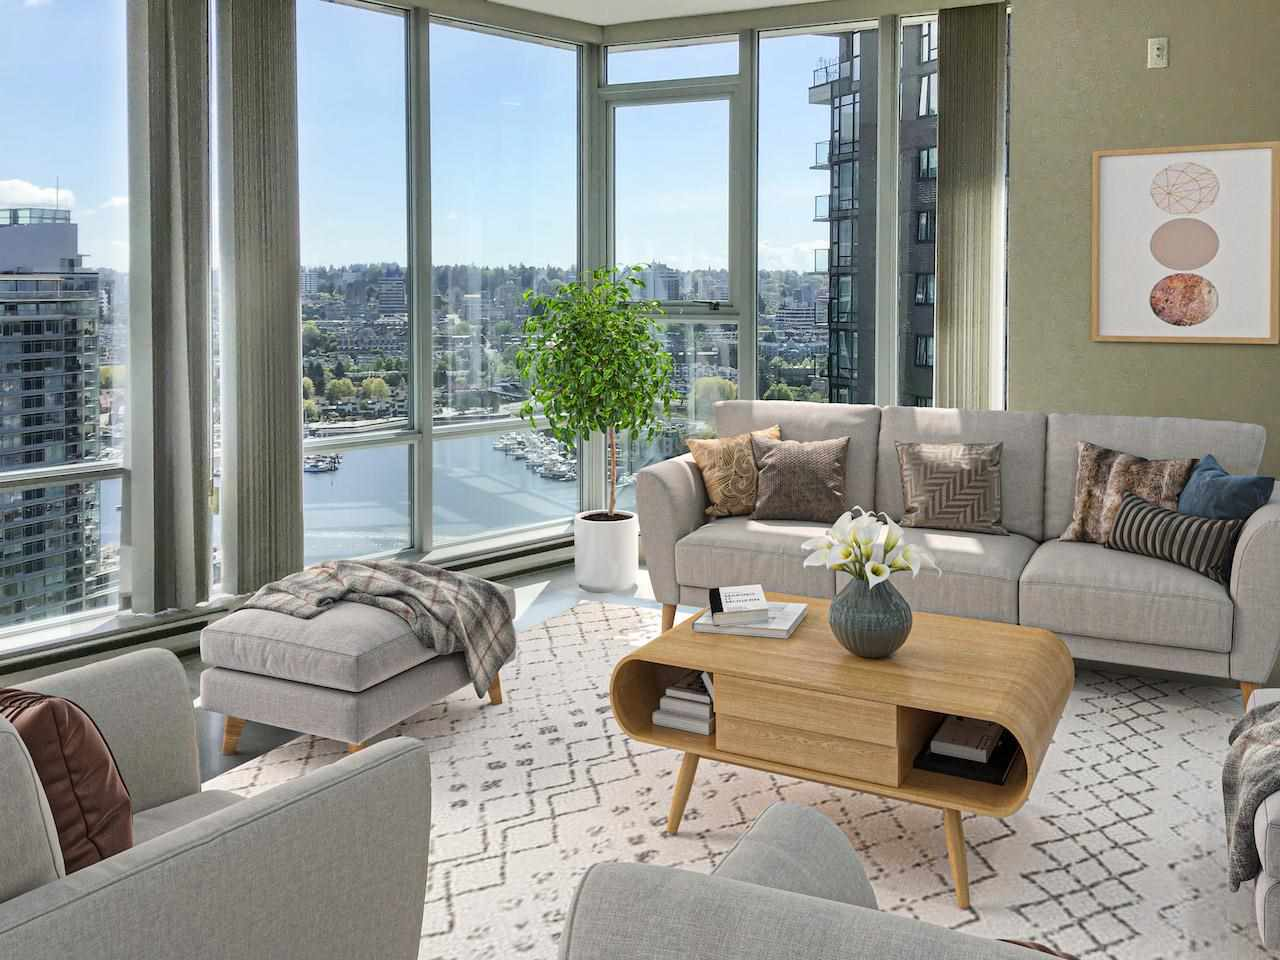 2701 550 PACIFIC STREET - Yaletown Apartment/Condo for sale, 2 Bedrooms (R2576640) - #1